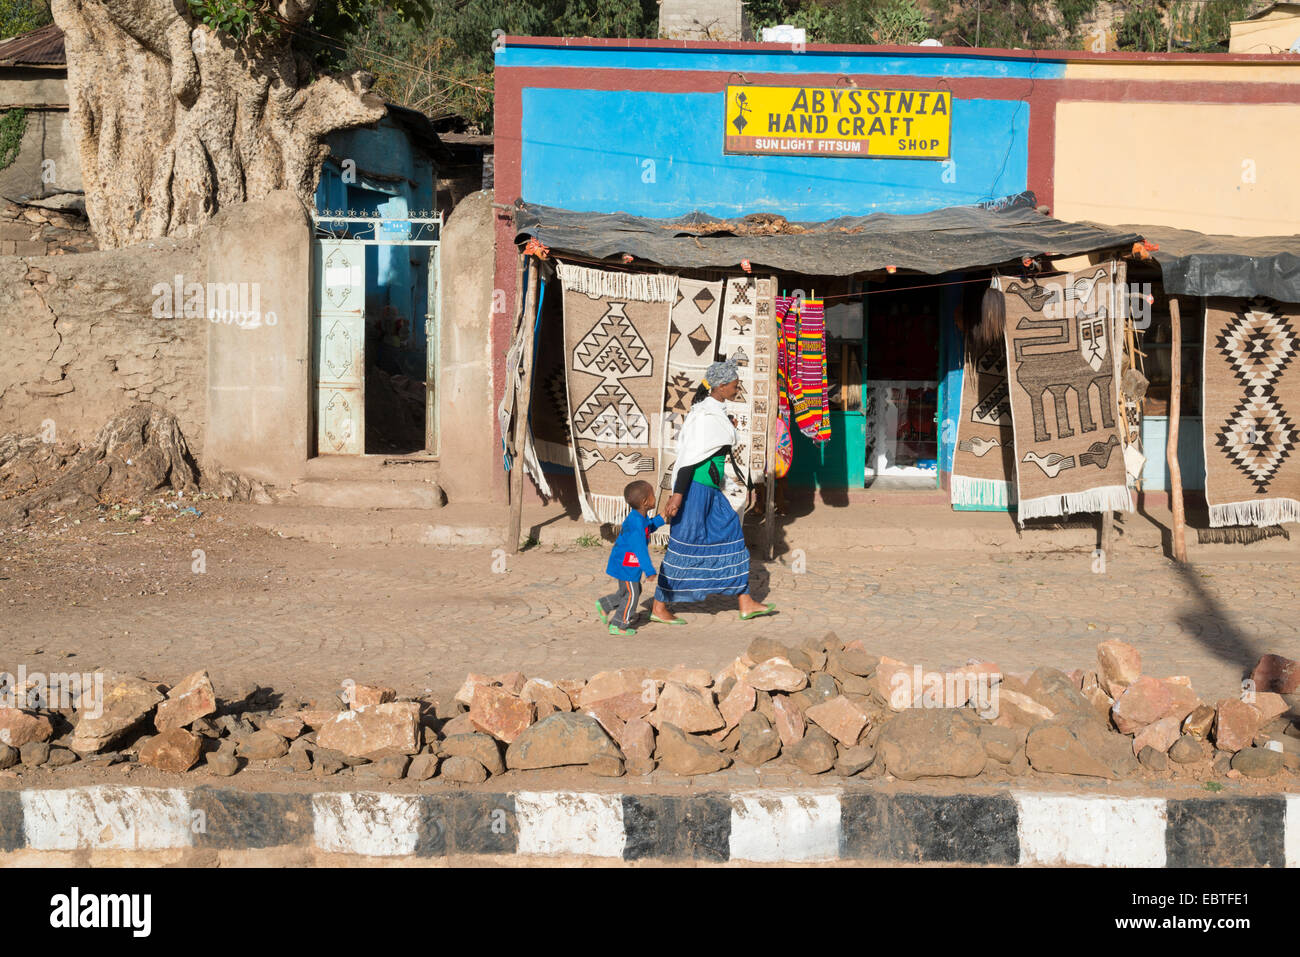 Aksum Old City. Northern Ethiopia. - Stock Image